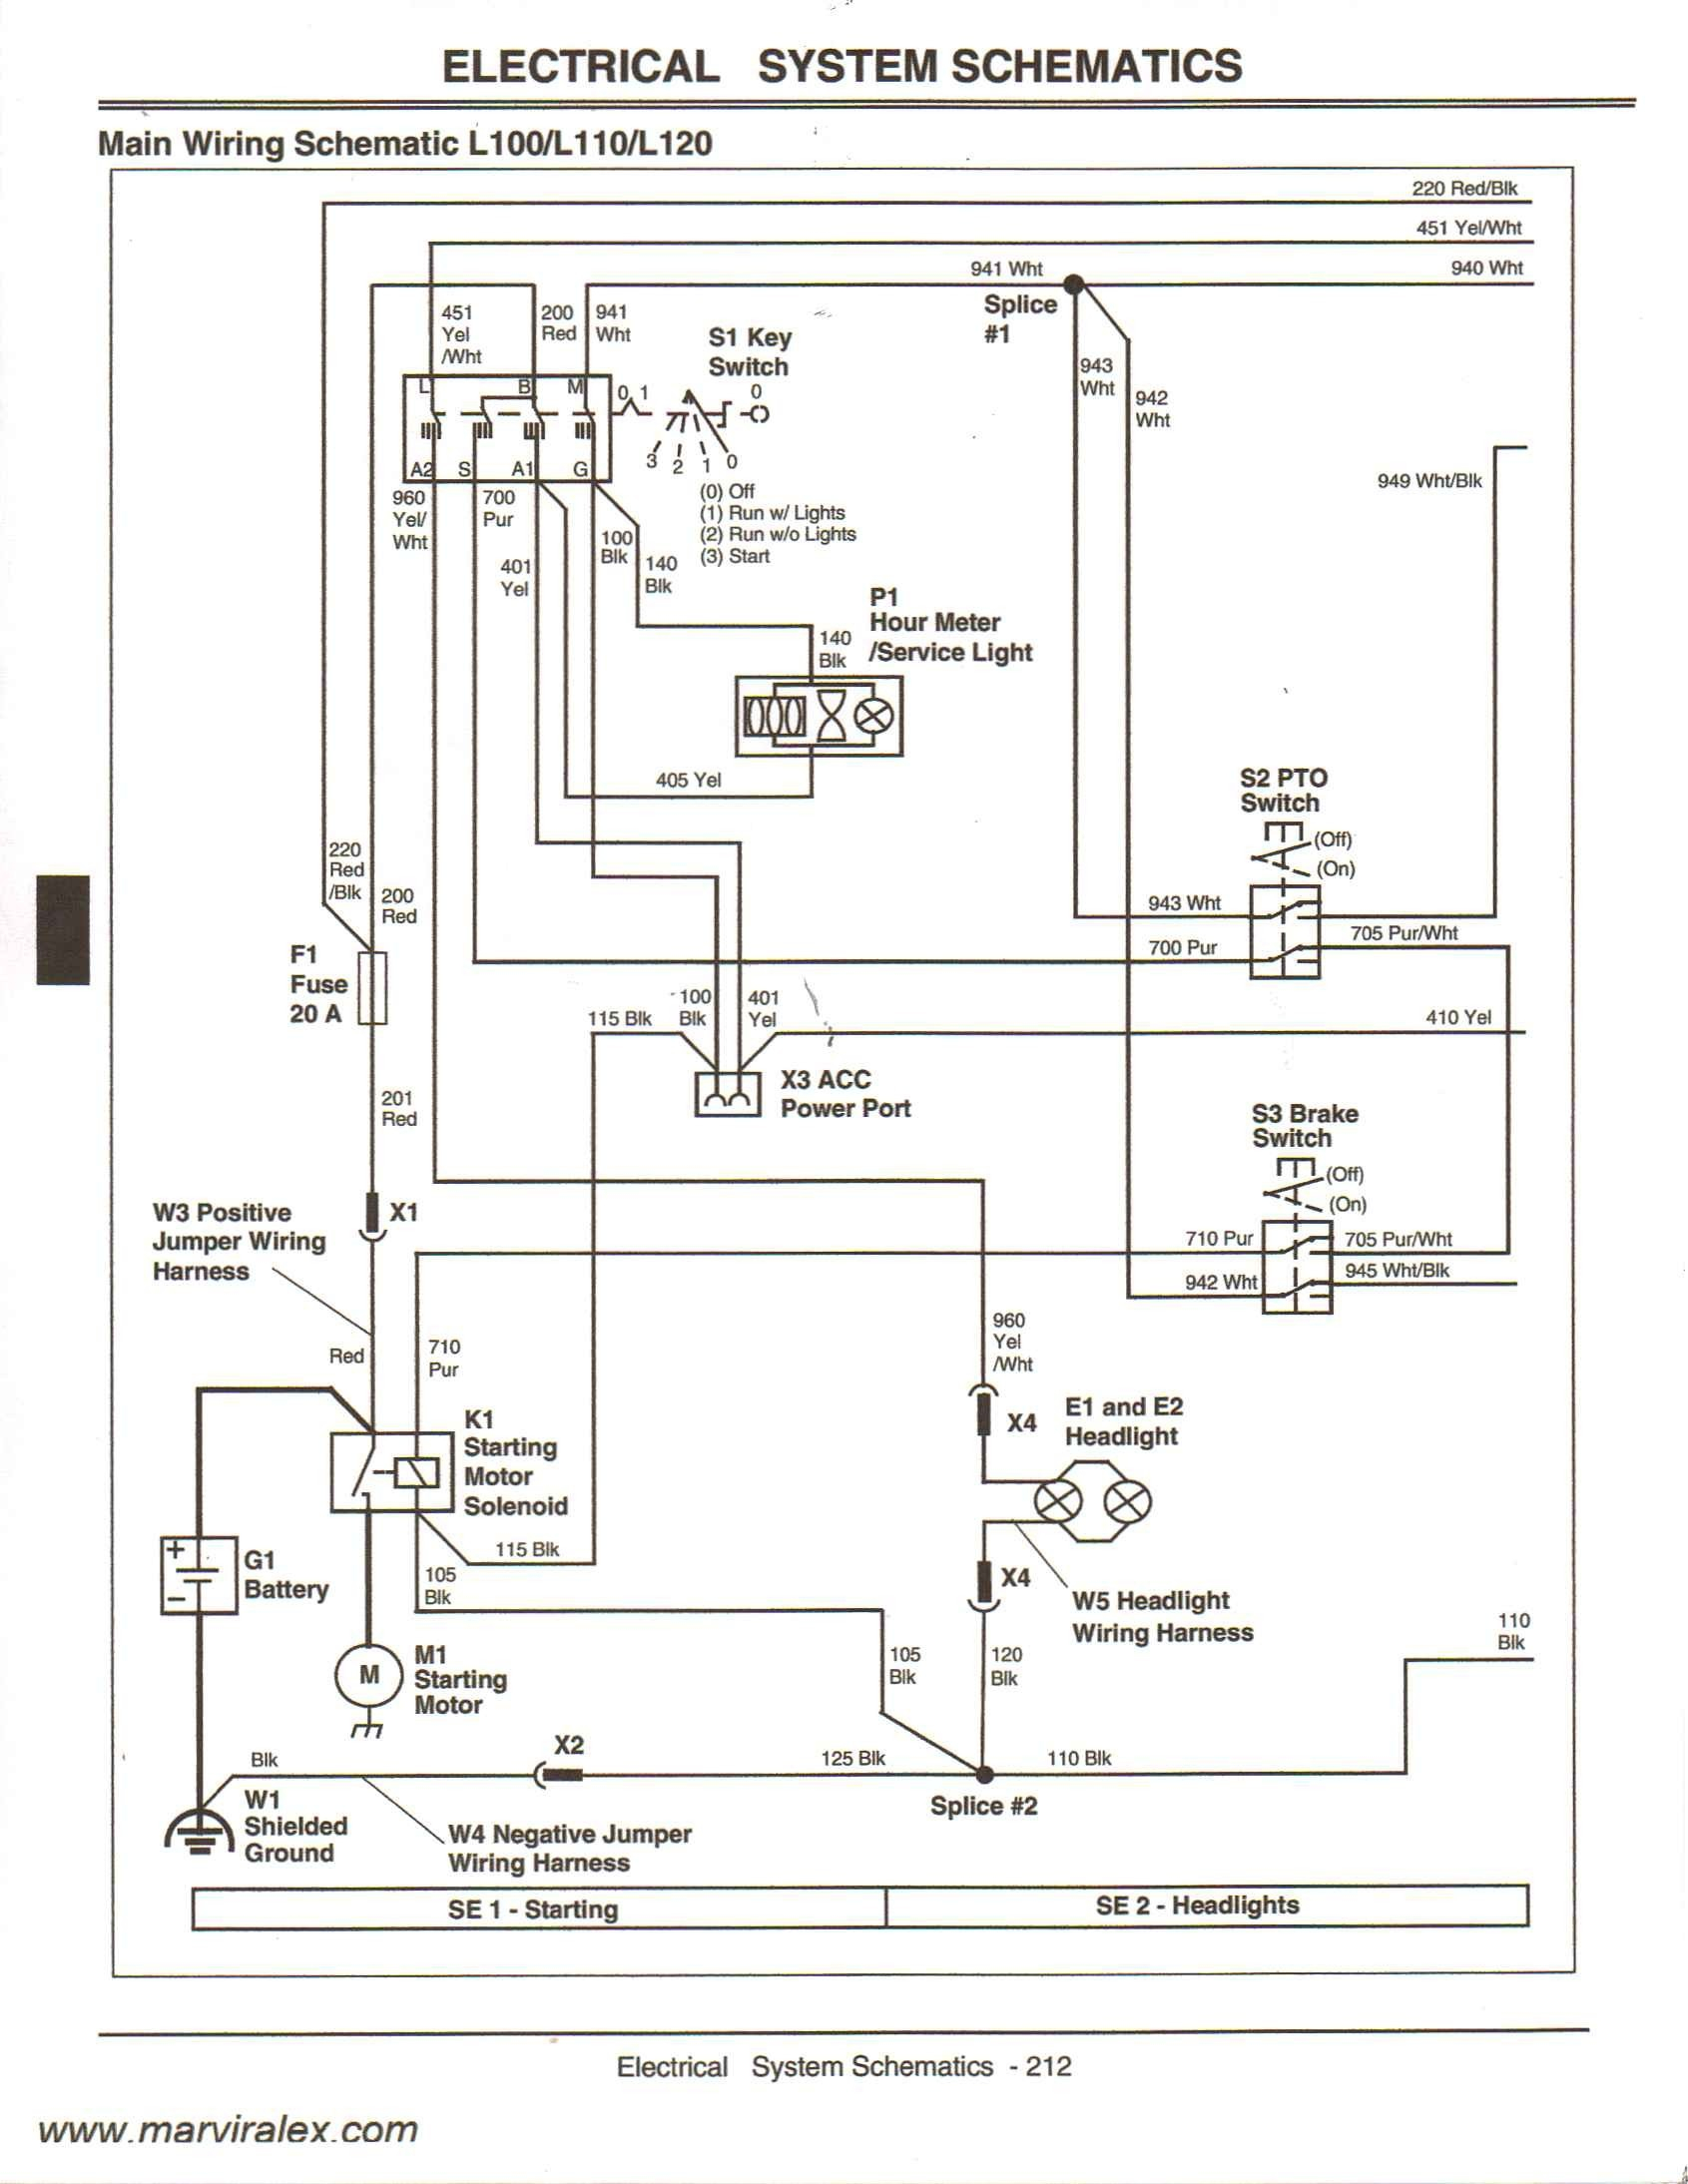 Wiring Diagram For John Deere 2020 | Wiring Diagram on